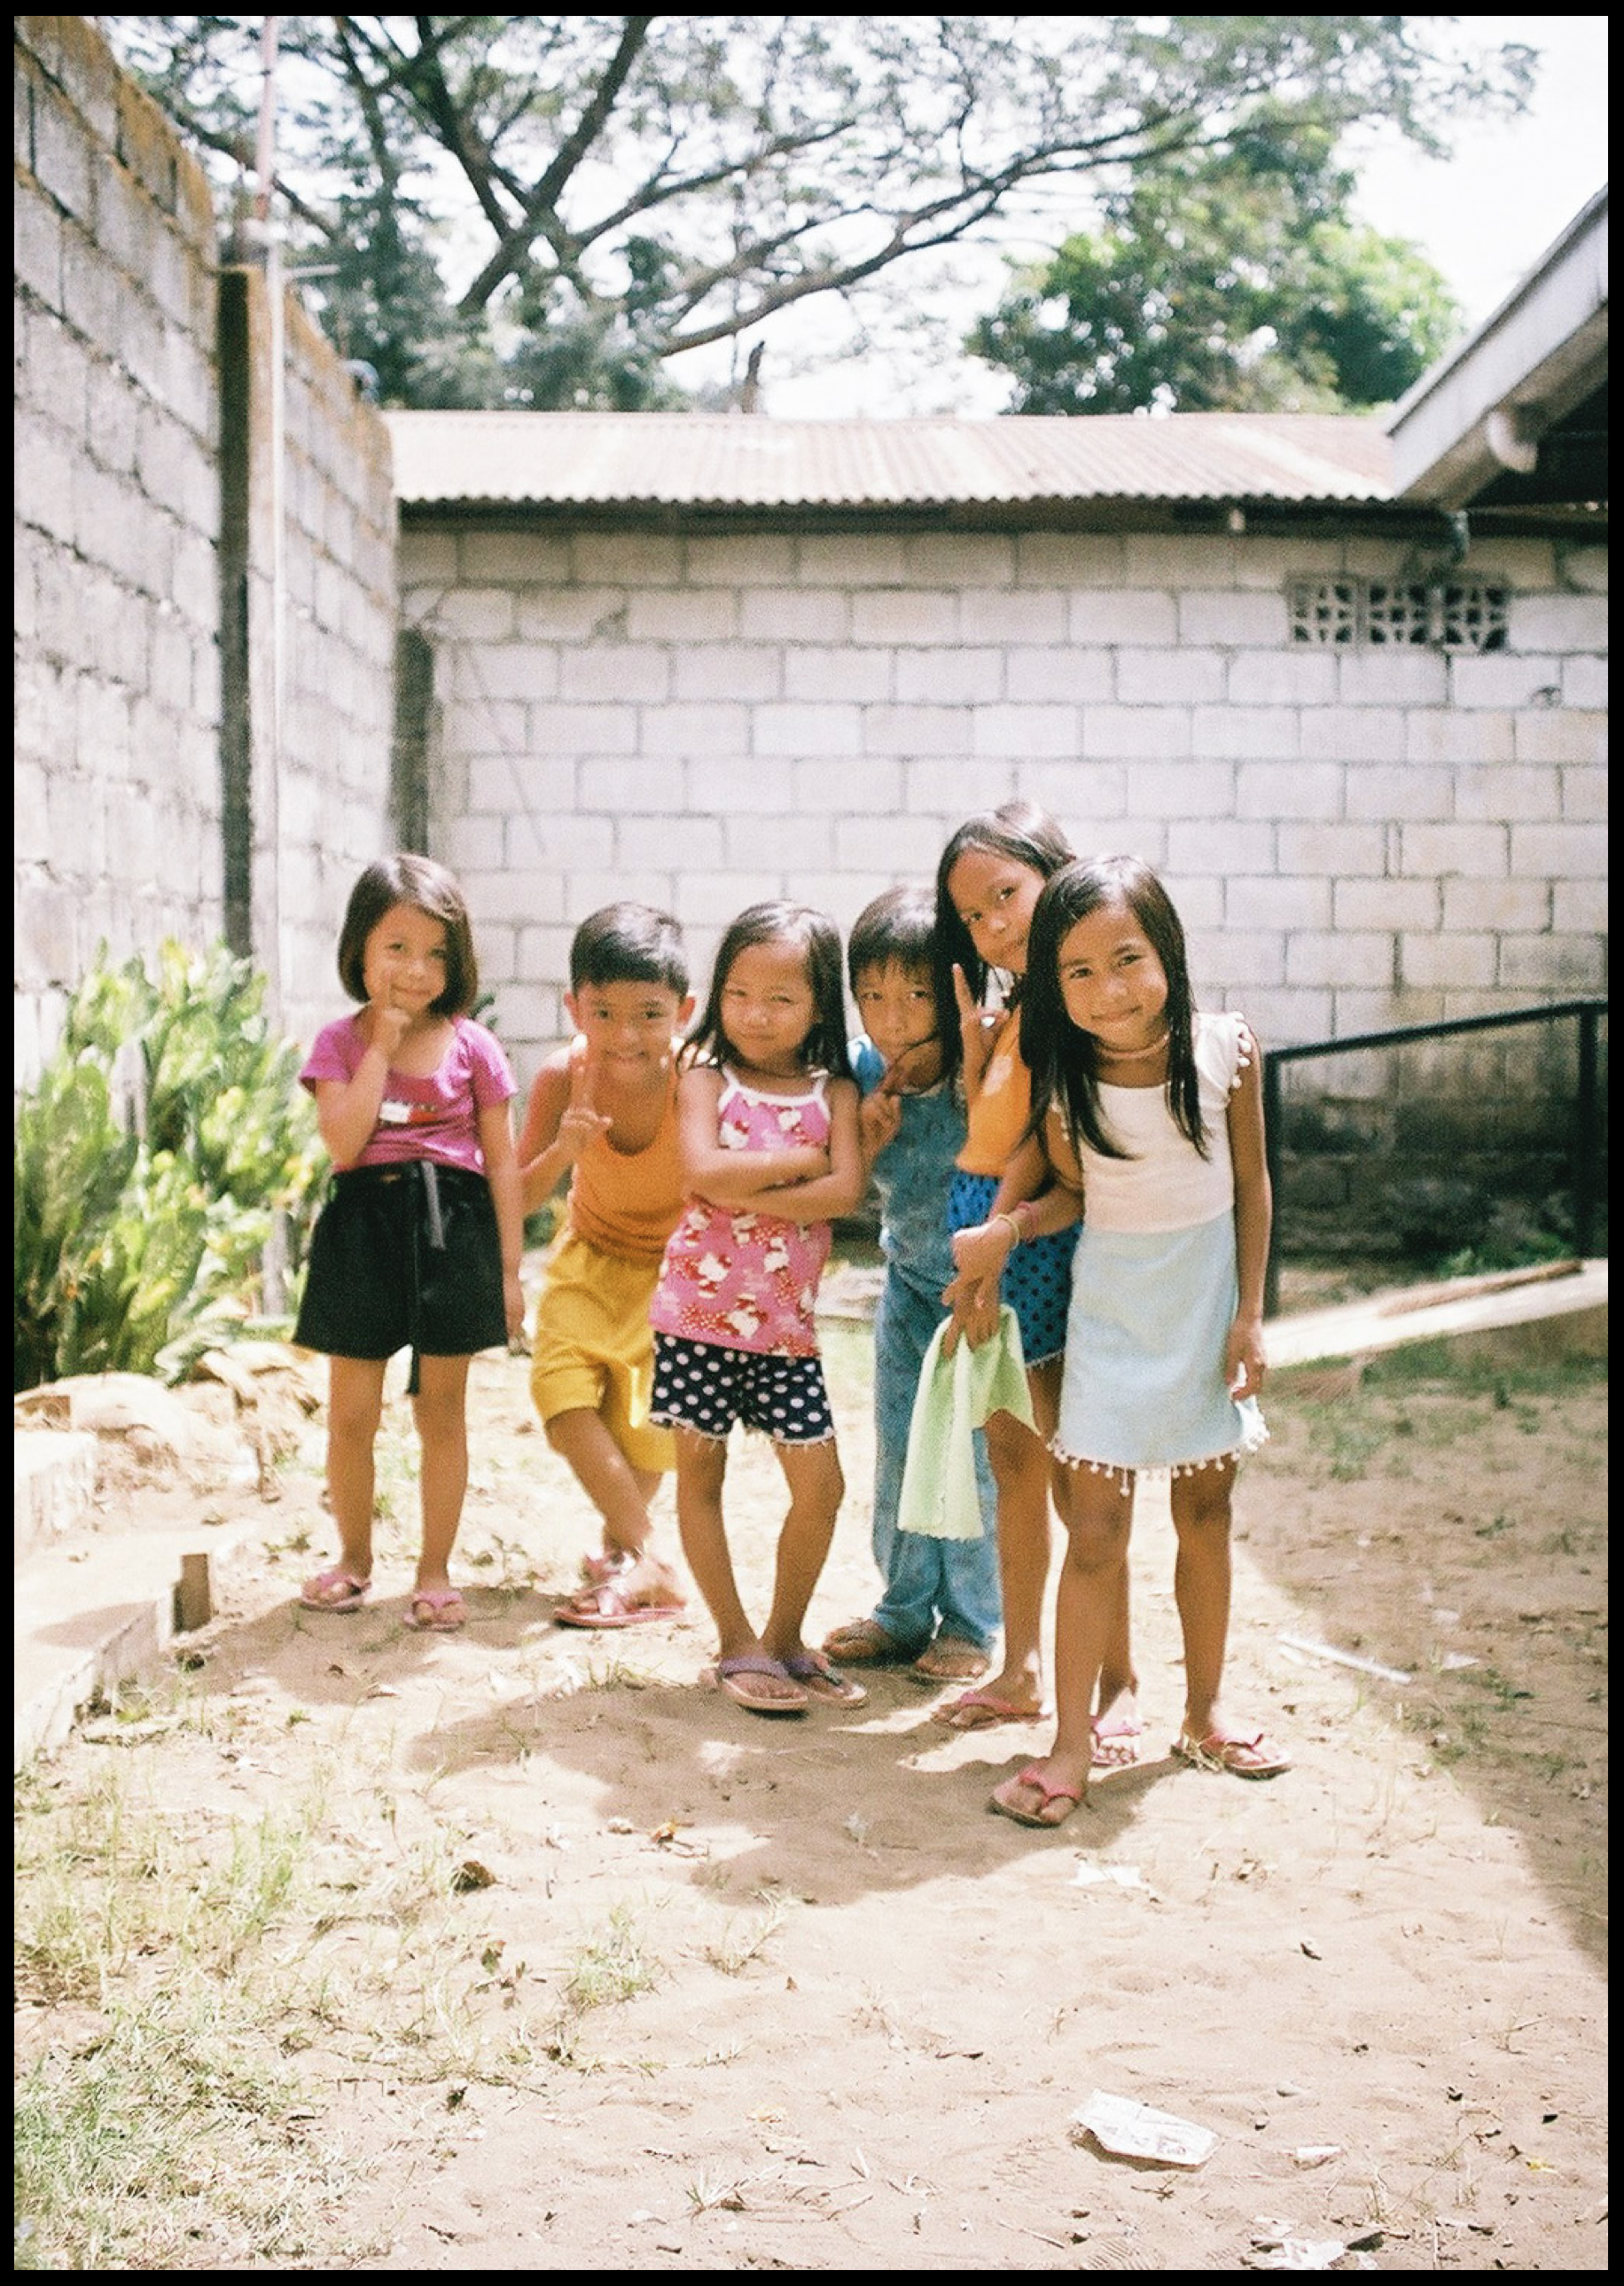 CoxCo_daily_life_Philippines_02 2019-08-12 0.39.05.png